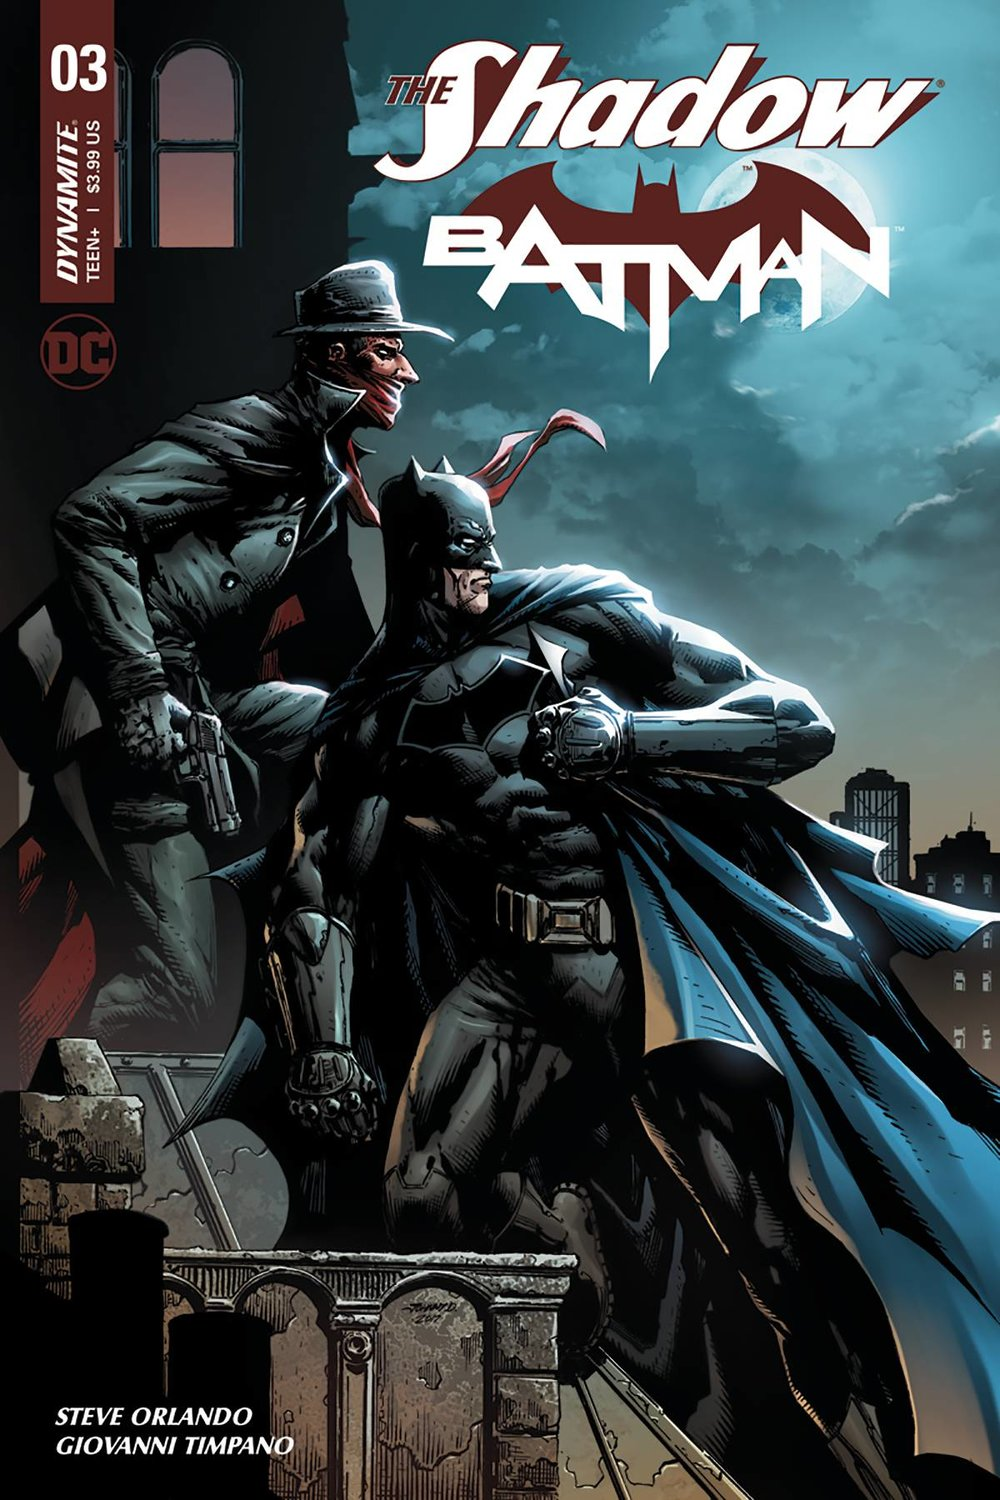 SHADOW BATMAN 3 of 6 CVR C DESJARDINS.jpg